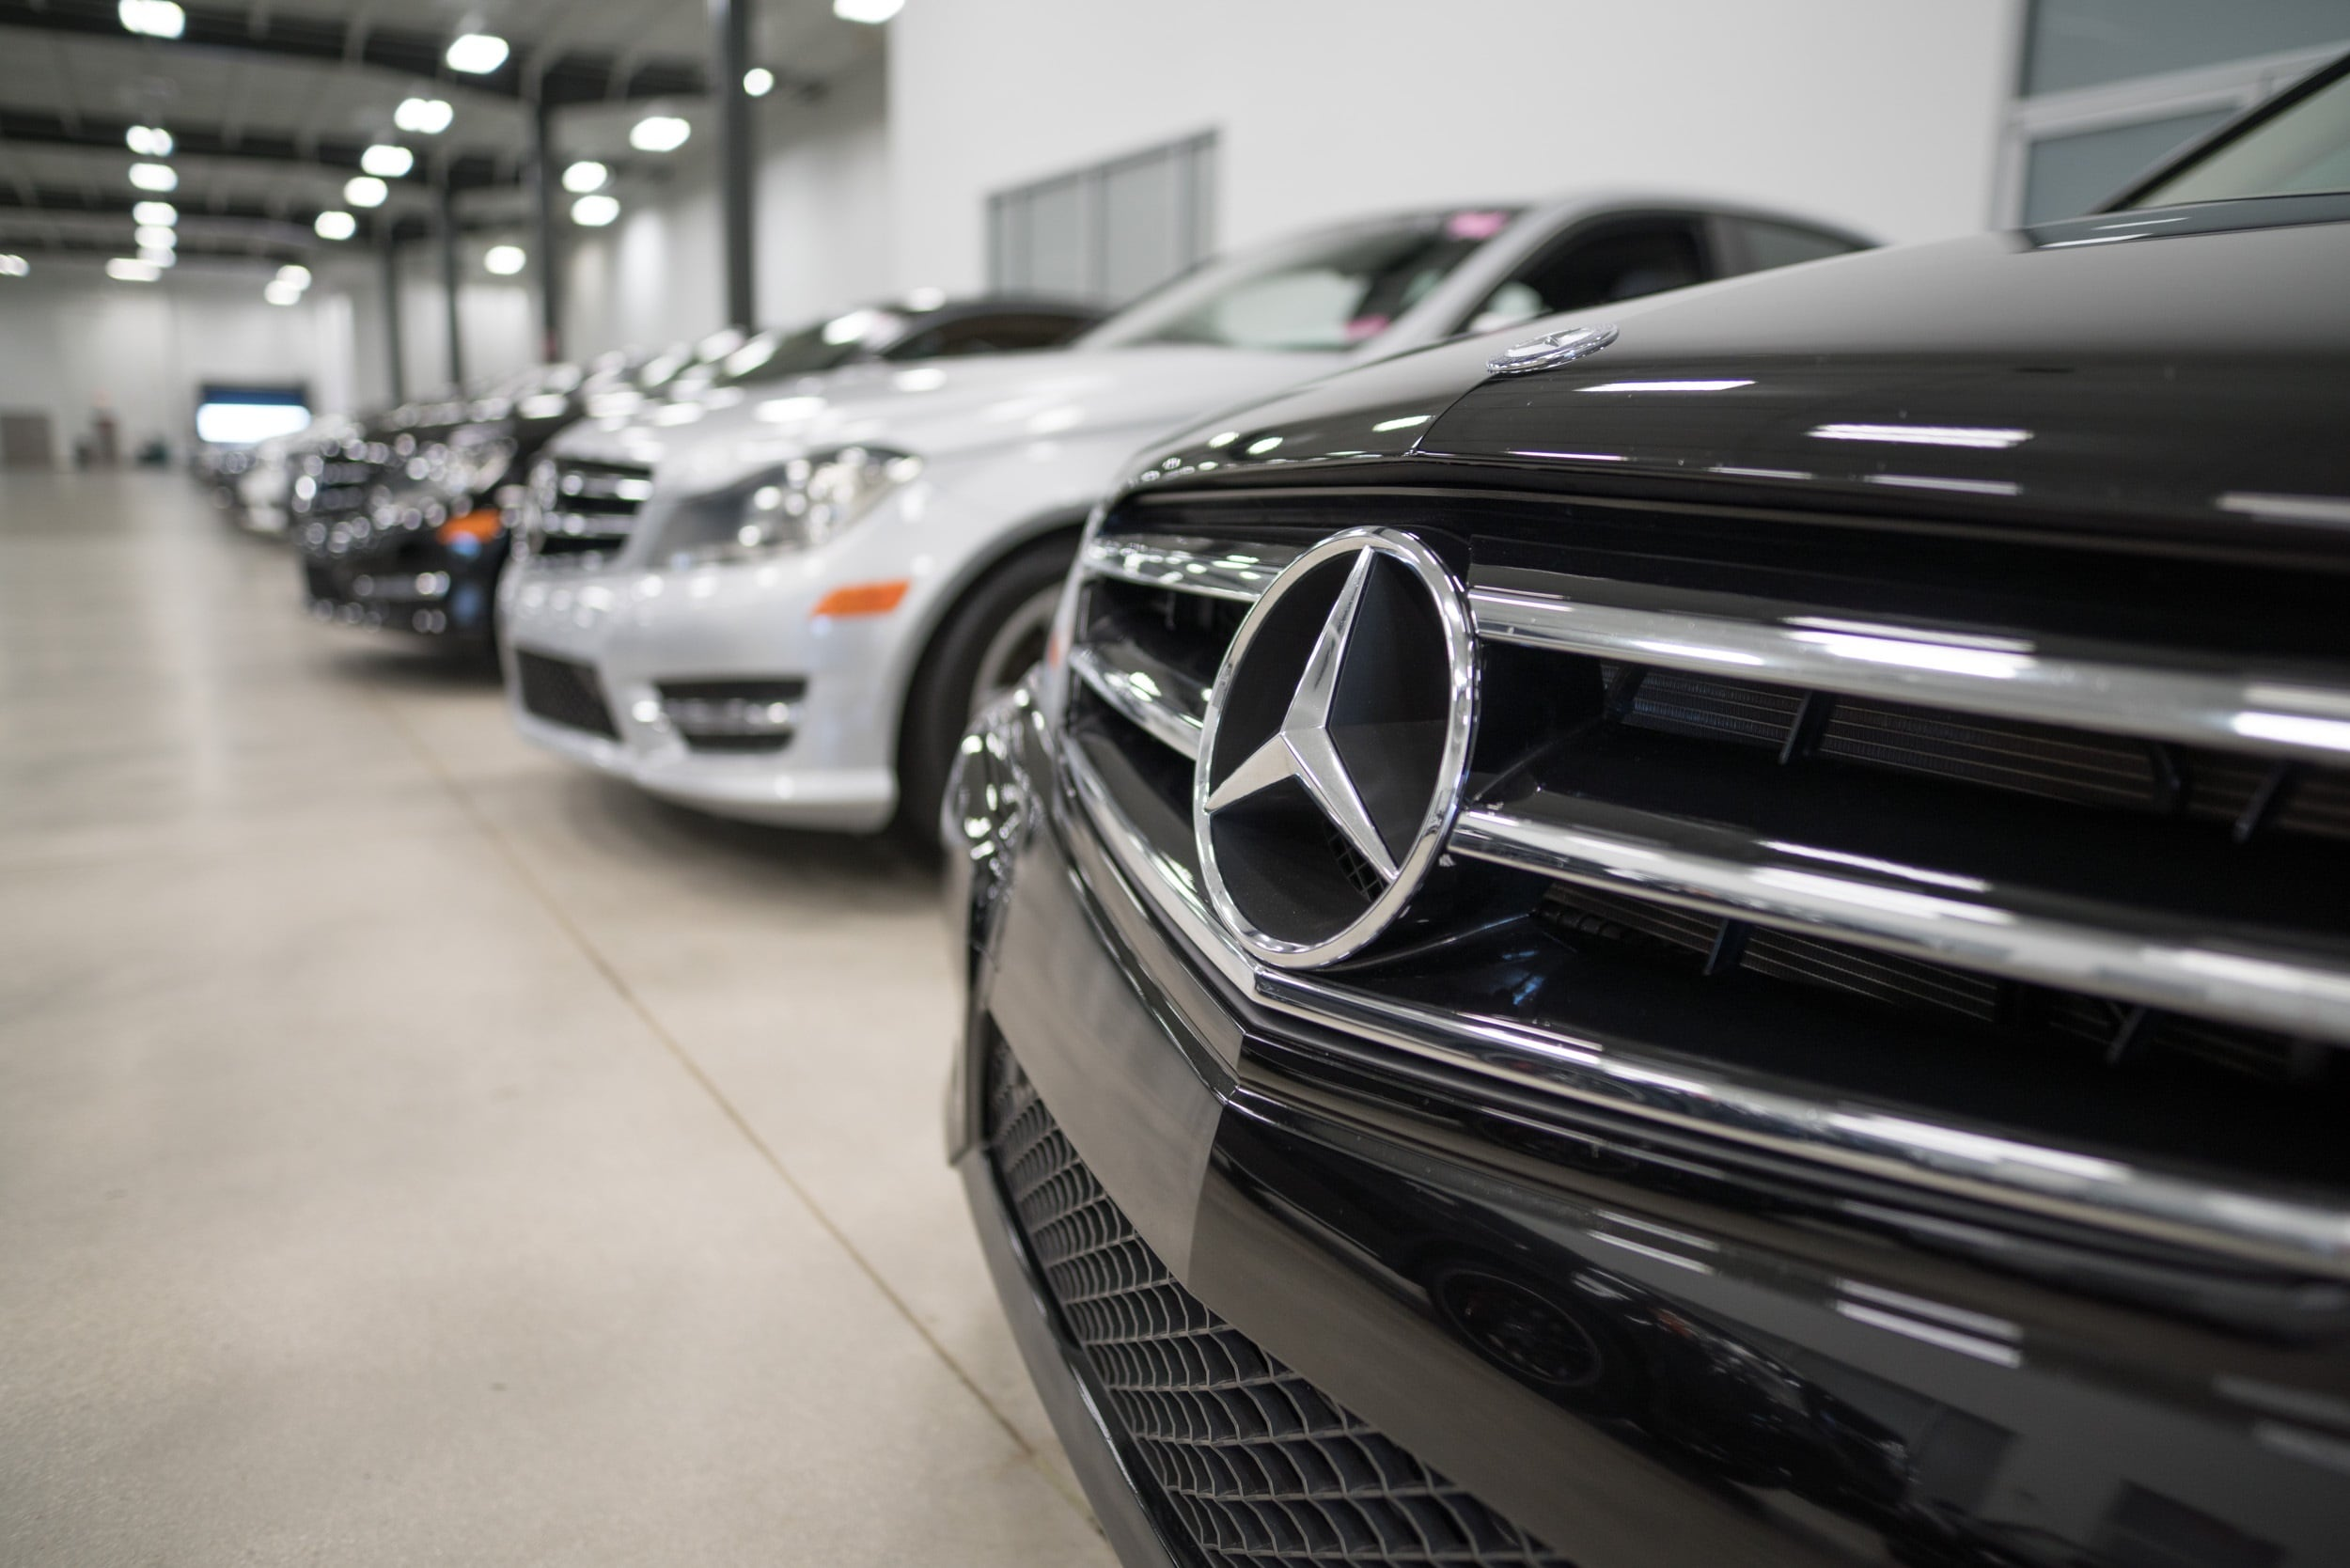 Mercedes benz of miami mercedes benz dealer near me for Miami mercedes benz dealers